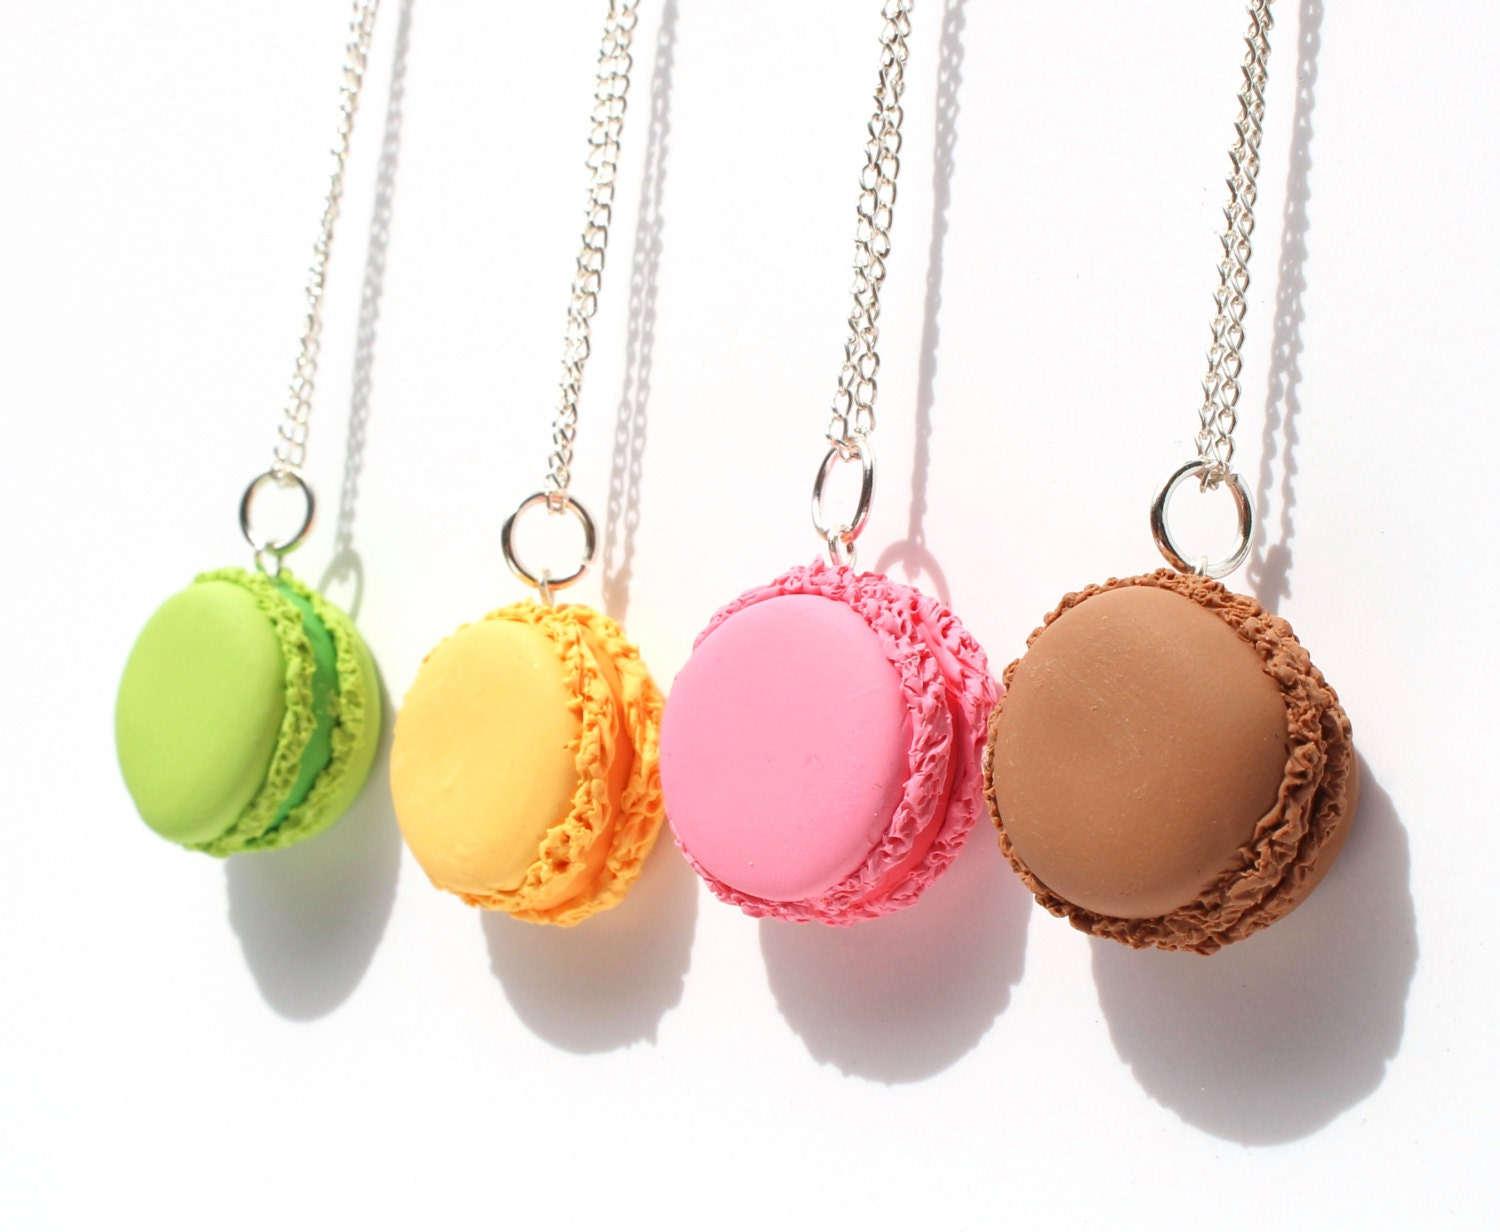 4 way friendship necklace french macaron best friend charms